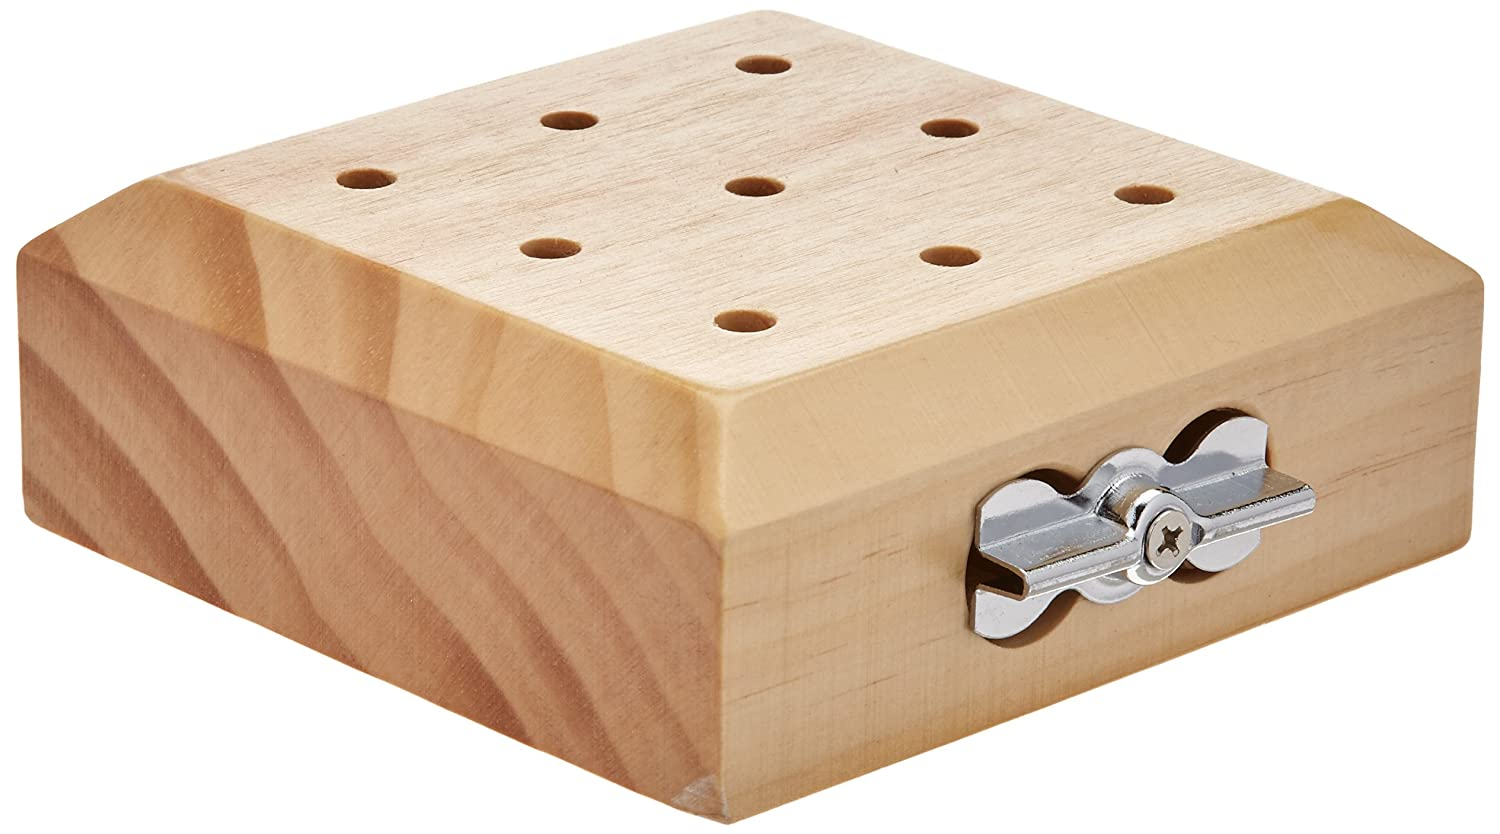 Jamar 9-Hole Wooden Pegboard, Peg Test and Pegs to Improve Fine Motor Coordination & Finger Dexterity, Hand exercise Test for Rehabilitation & Occupational Therapy to Improve Motor Skills